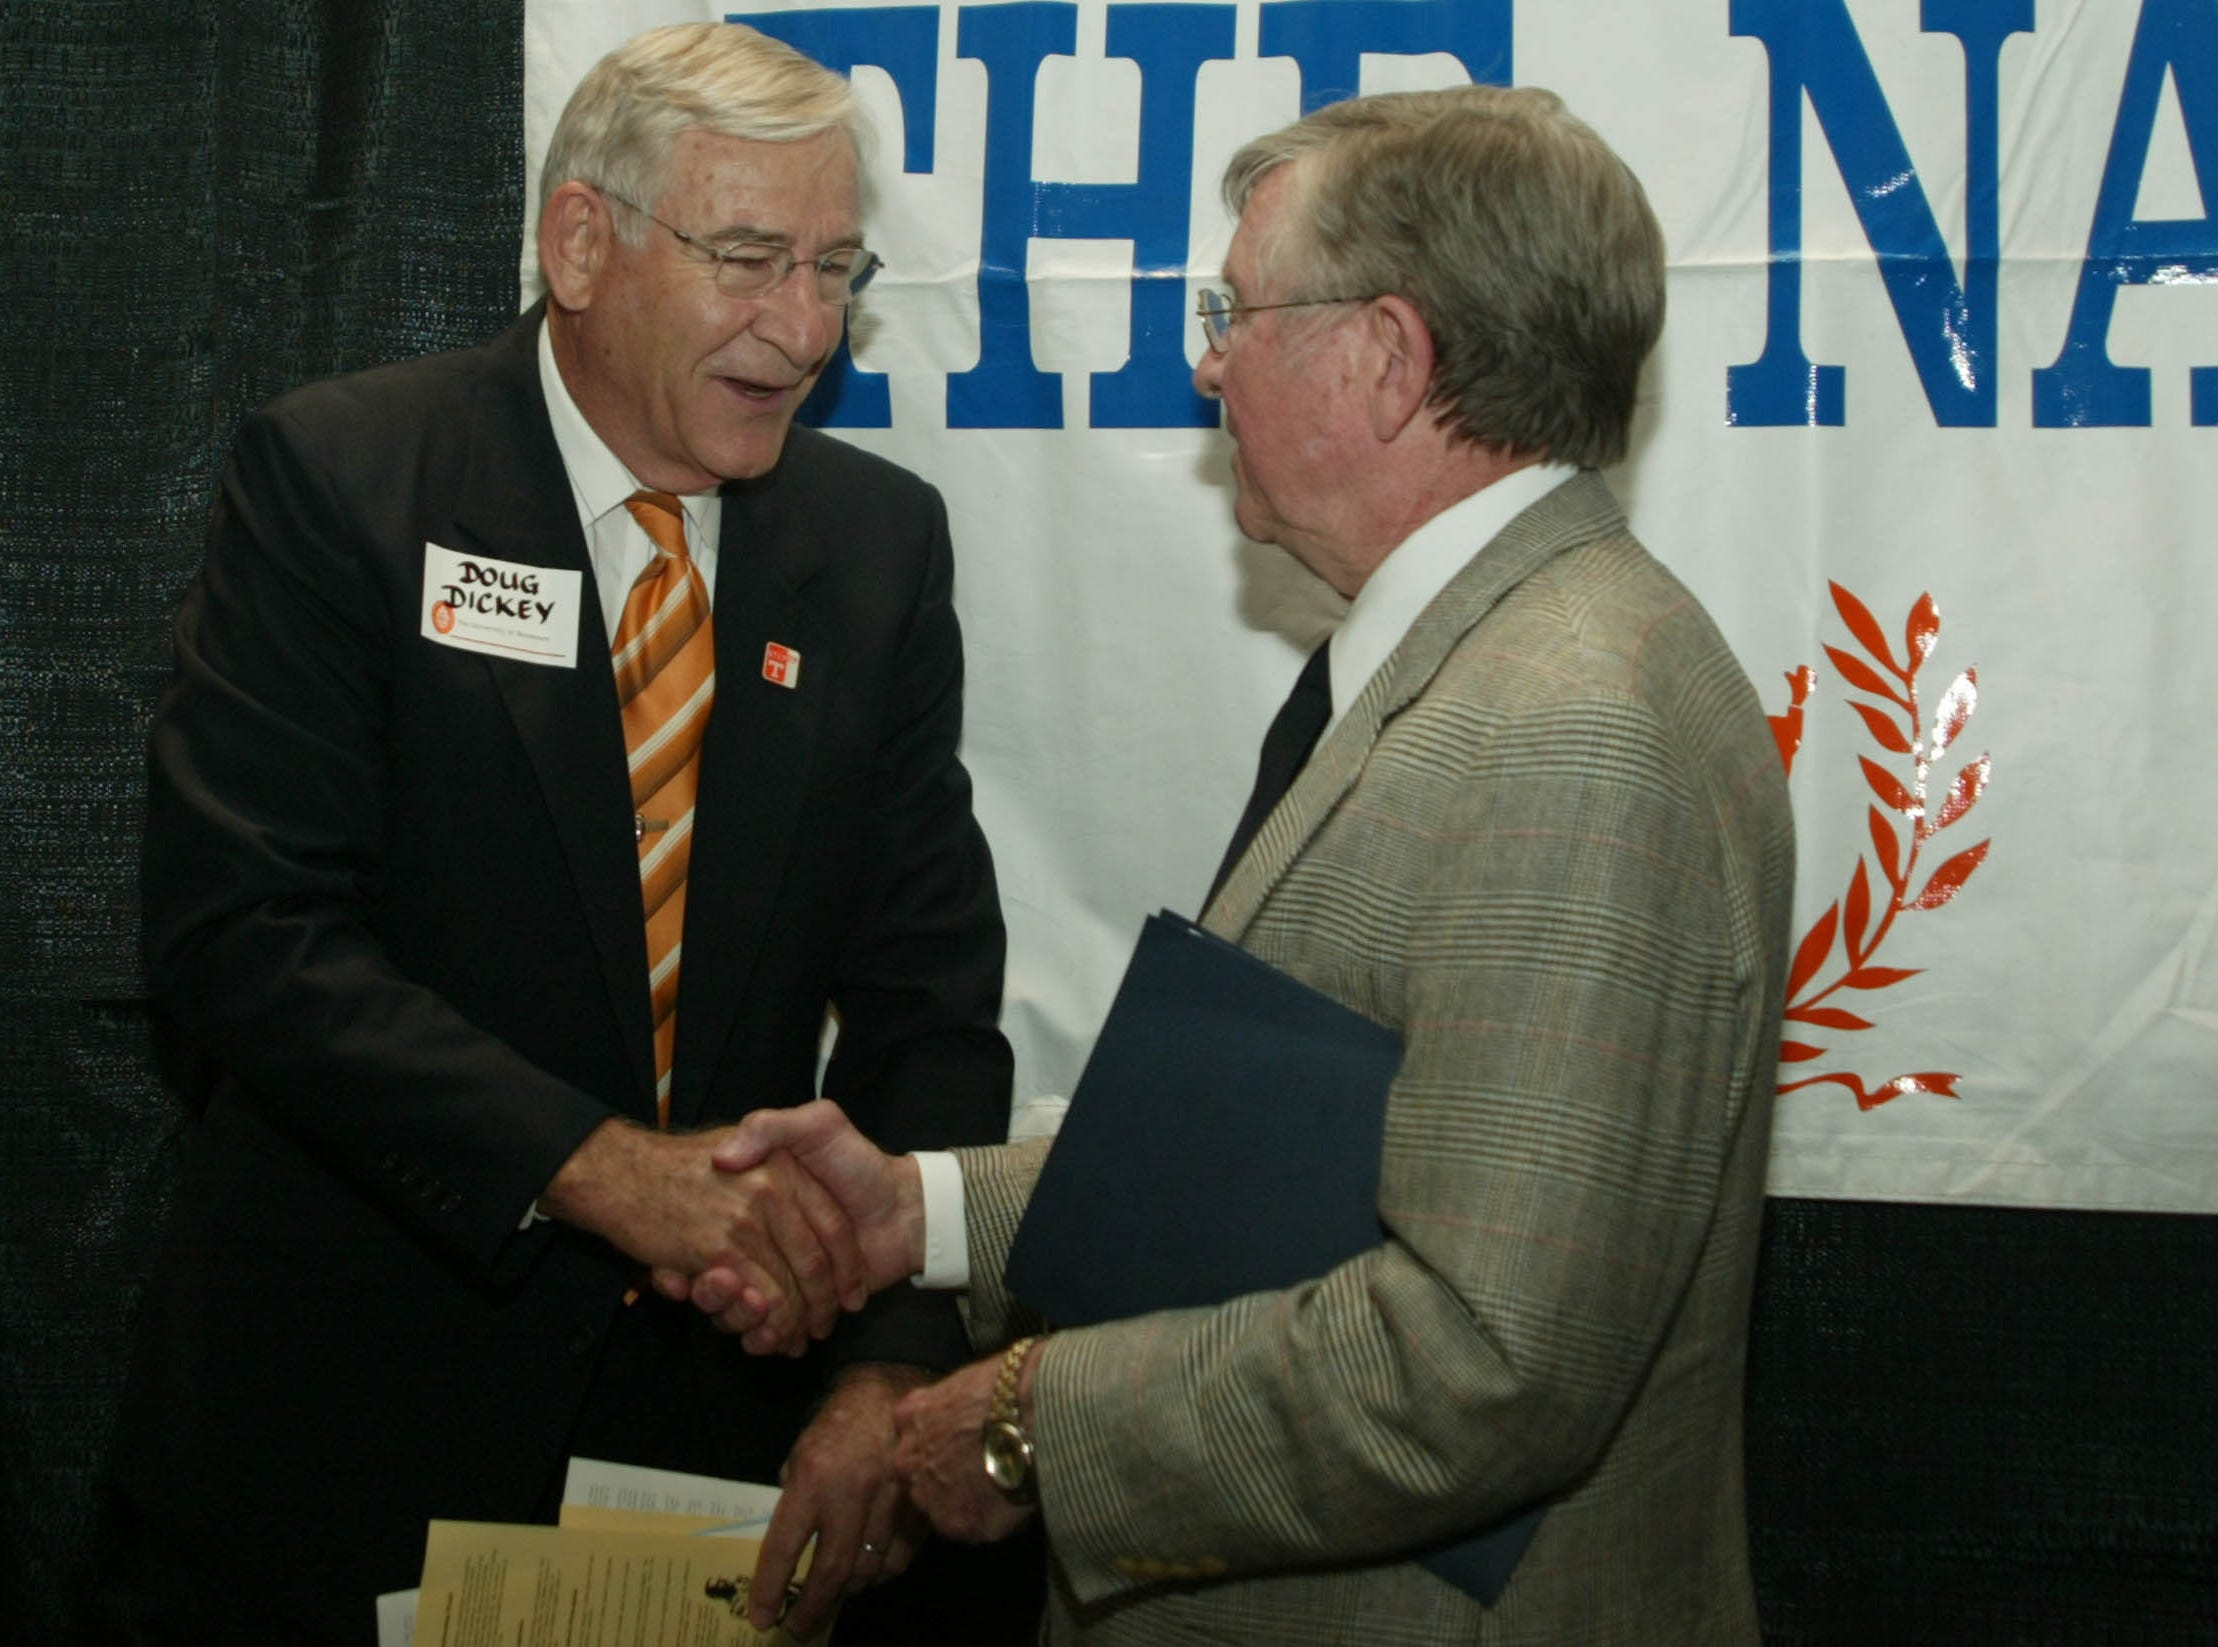 University of Tennessee Athletic Director Doug Dickey greets former UT Football Coach Johnny Majors Saturday morning at the awards banquet for the East Tennessee Chapter of the Nation Football Foundation and Hall of Fame.